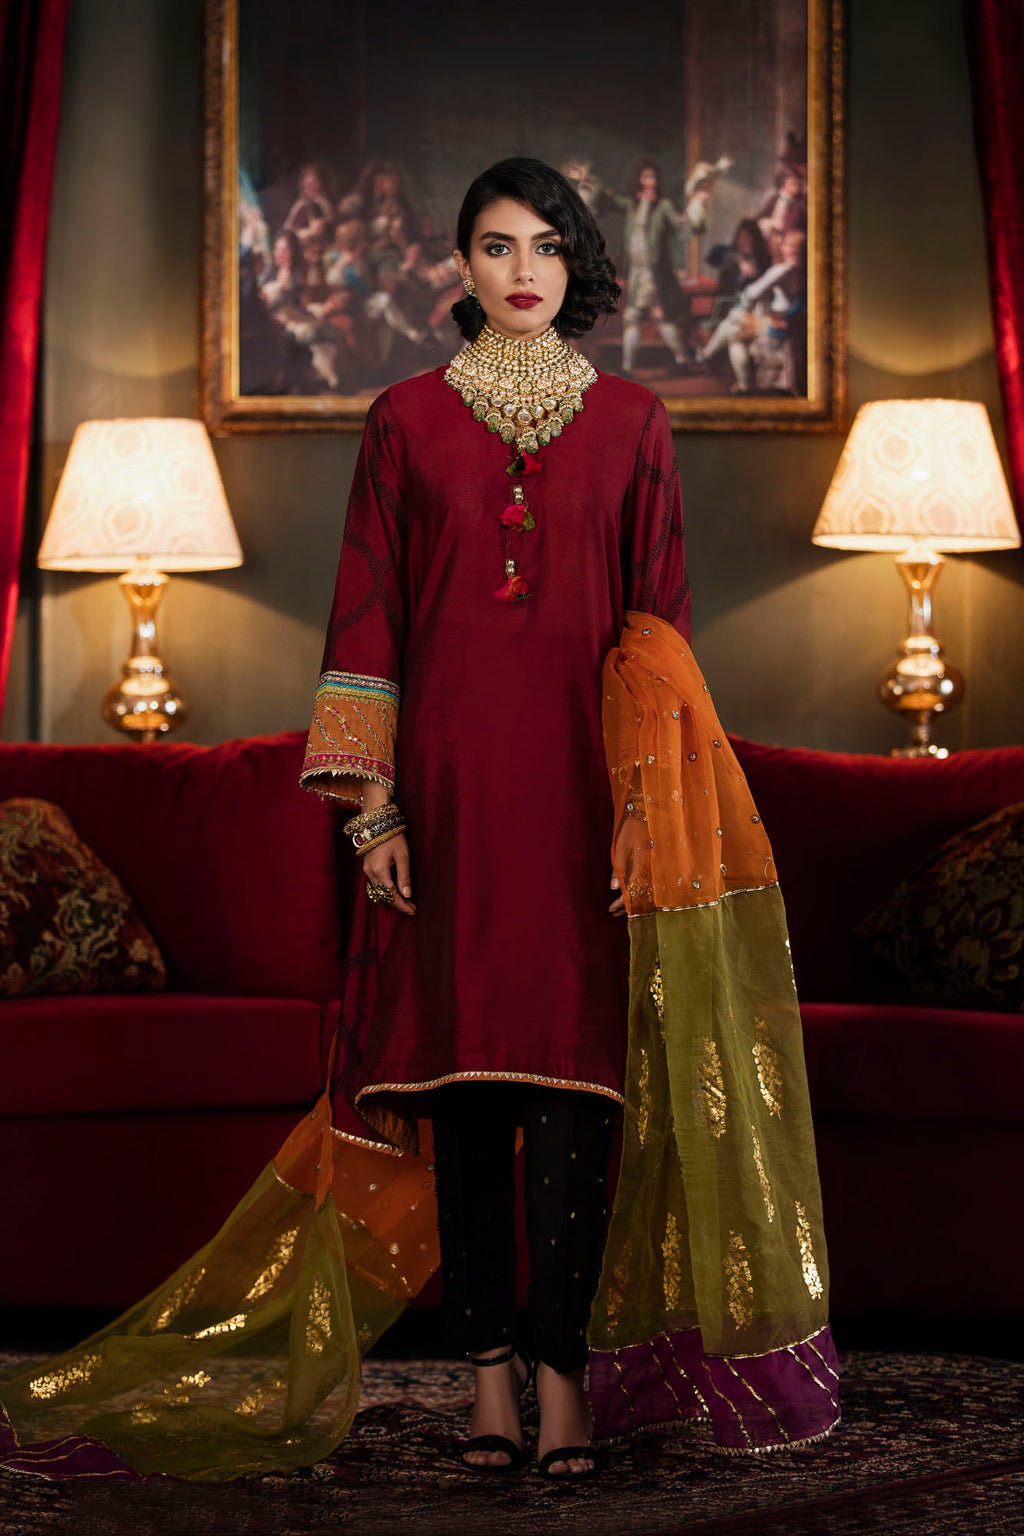 Boutique Suit (Shirt + Dupatta) - Ethnic by Outfitters